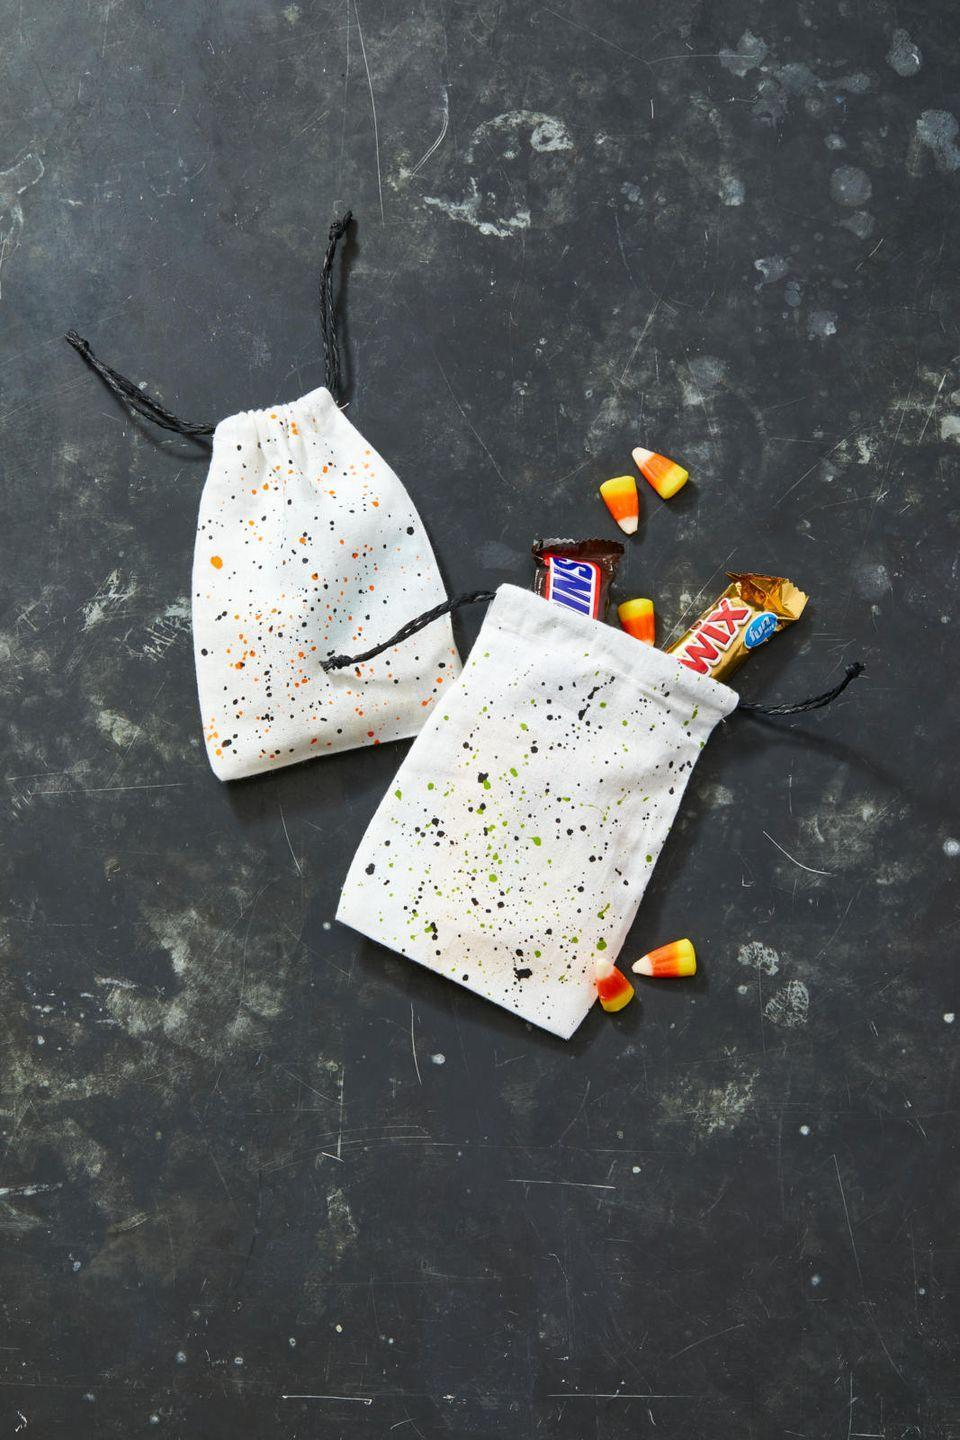 "<p>Use these treat bags to dole out candy to trick-or-treaters, or as Halloween party favors. To make them, just mix water with acrylic paint until it reaches the consistency of heavy cream. Coat a craft brush with paint and then lightly tap it repeatedly over a small muslin drawstring bag. You can also use an old toothbrush by dipping it into paint and then, using your finger, flick the bristles onto the bag. Let it dry completely and repeat on other side.</p><p><a class=""link rapid-noclick-resp"" href=""https://www.amazon.com/Percent-Cotton-Muslin-Drawstring-12-Pack/dp/B01H9YKCKW?tag=syn-yahoo-20&ascsubtag=%5Bartid%7C10055.g.22062770%5Bsrc%7Cyahoo-us"" rel=""nofollow noopener"" target=""_blank"" data-ylk=""slk:SHOP MUSLIN BAGS"">SHOP MUSLIN BAGS </a></p>"